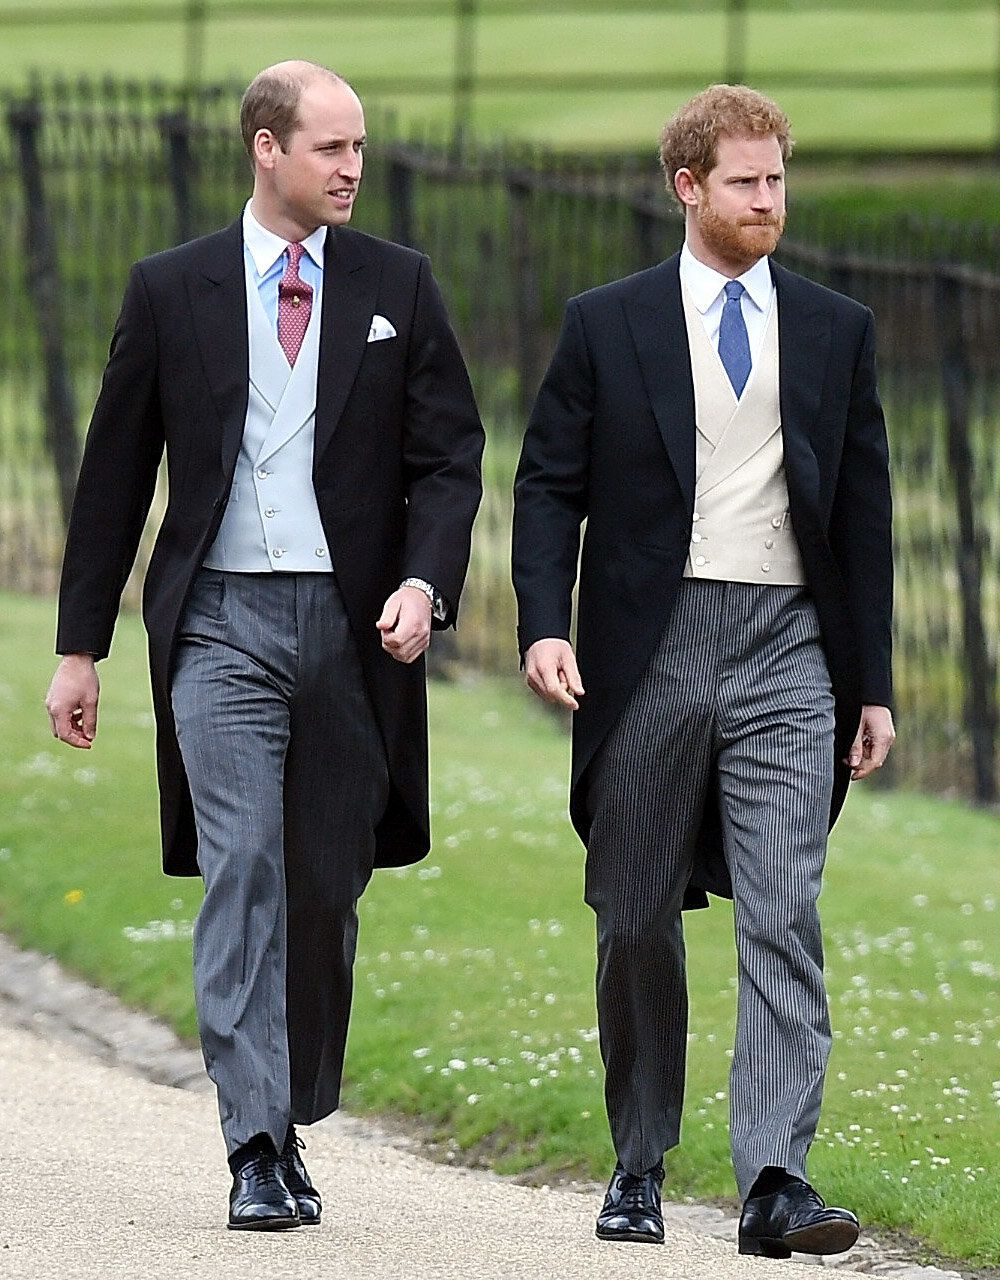 The Duke Of Cambridge And Prince Harry Wear Tails To Pippa Middleton's